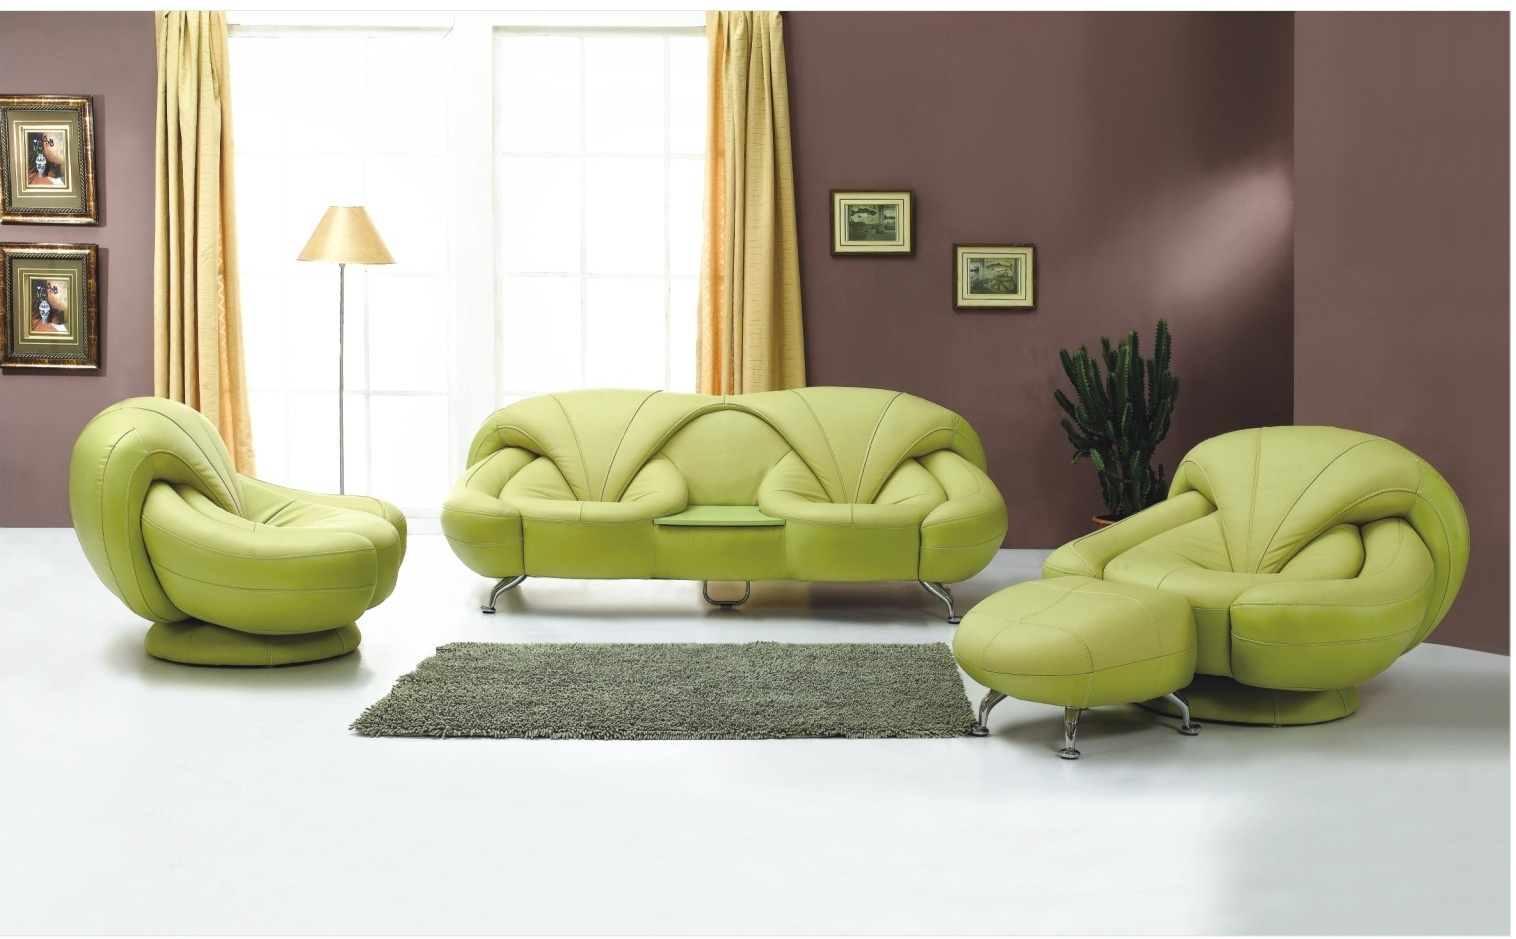 Sofa Sets Modern Designs The Most Expensive In World Living Room Furniture Ideas An Interior